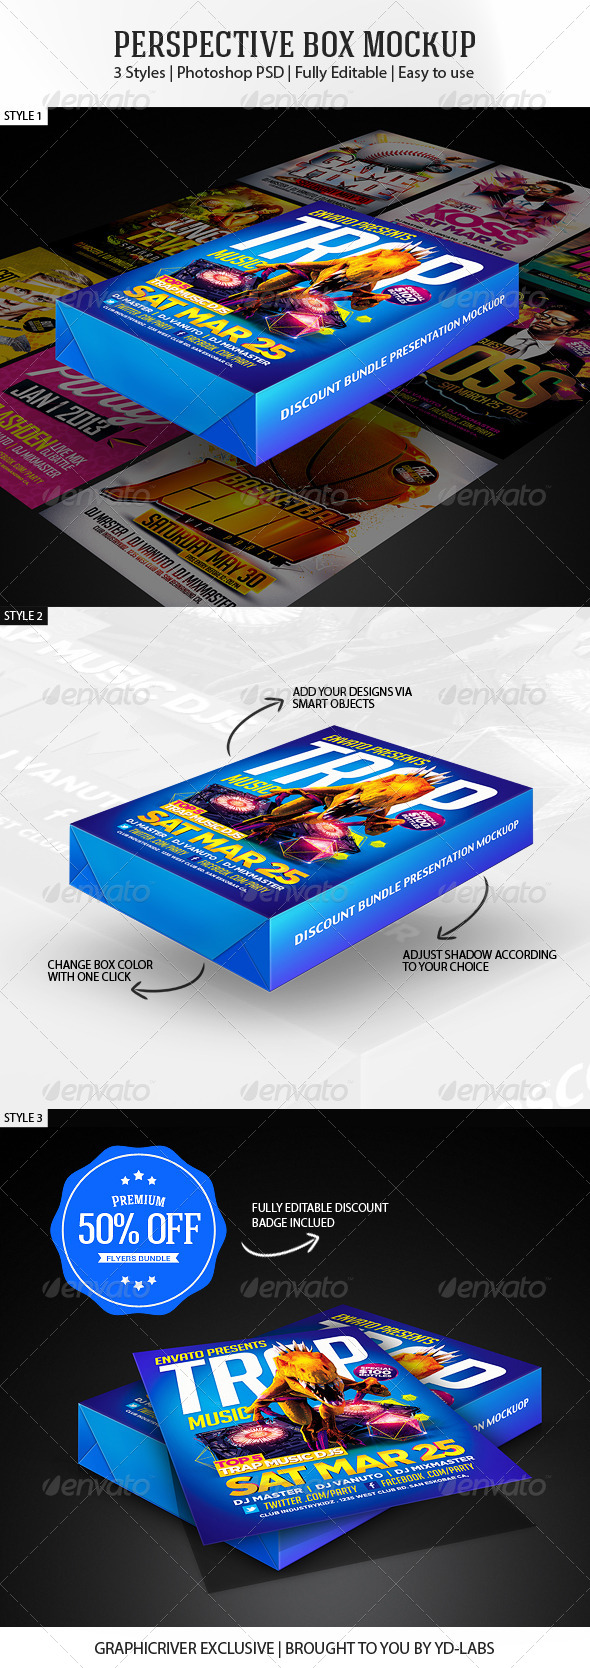 Perspective Box Mockup V1 - Miscellaneous Packaging